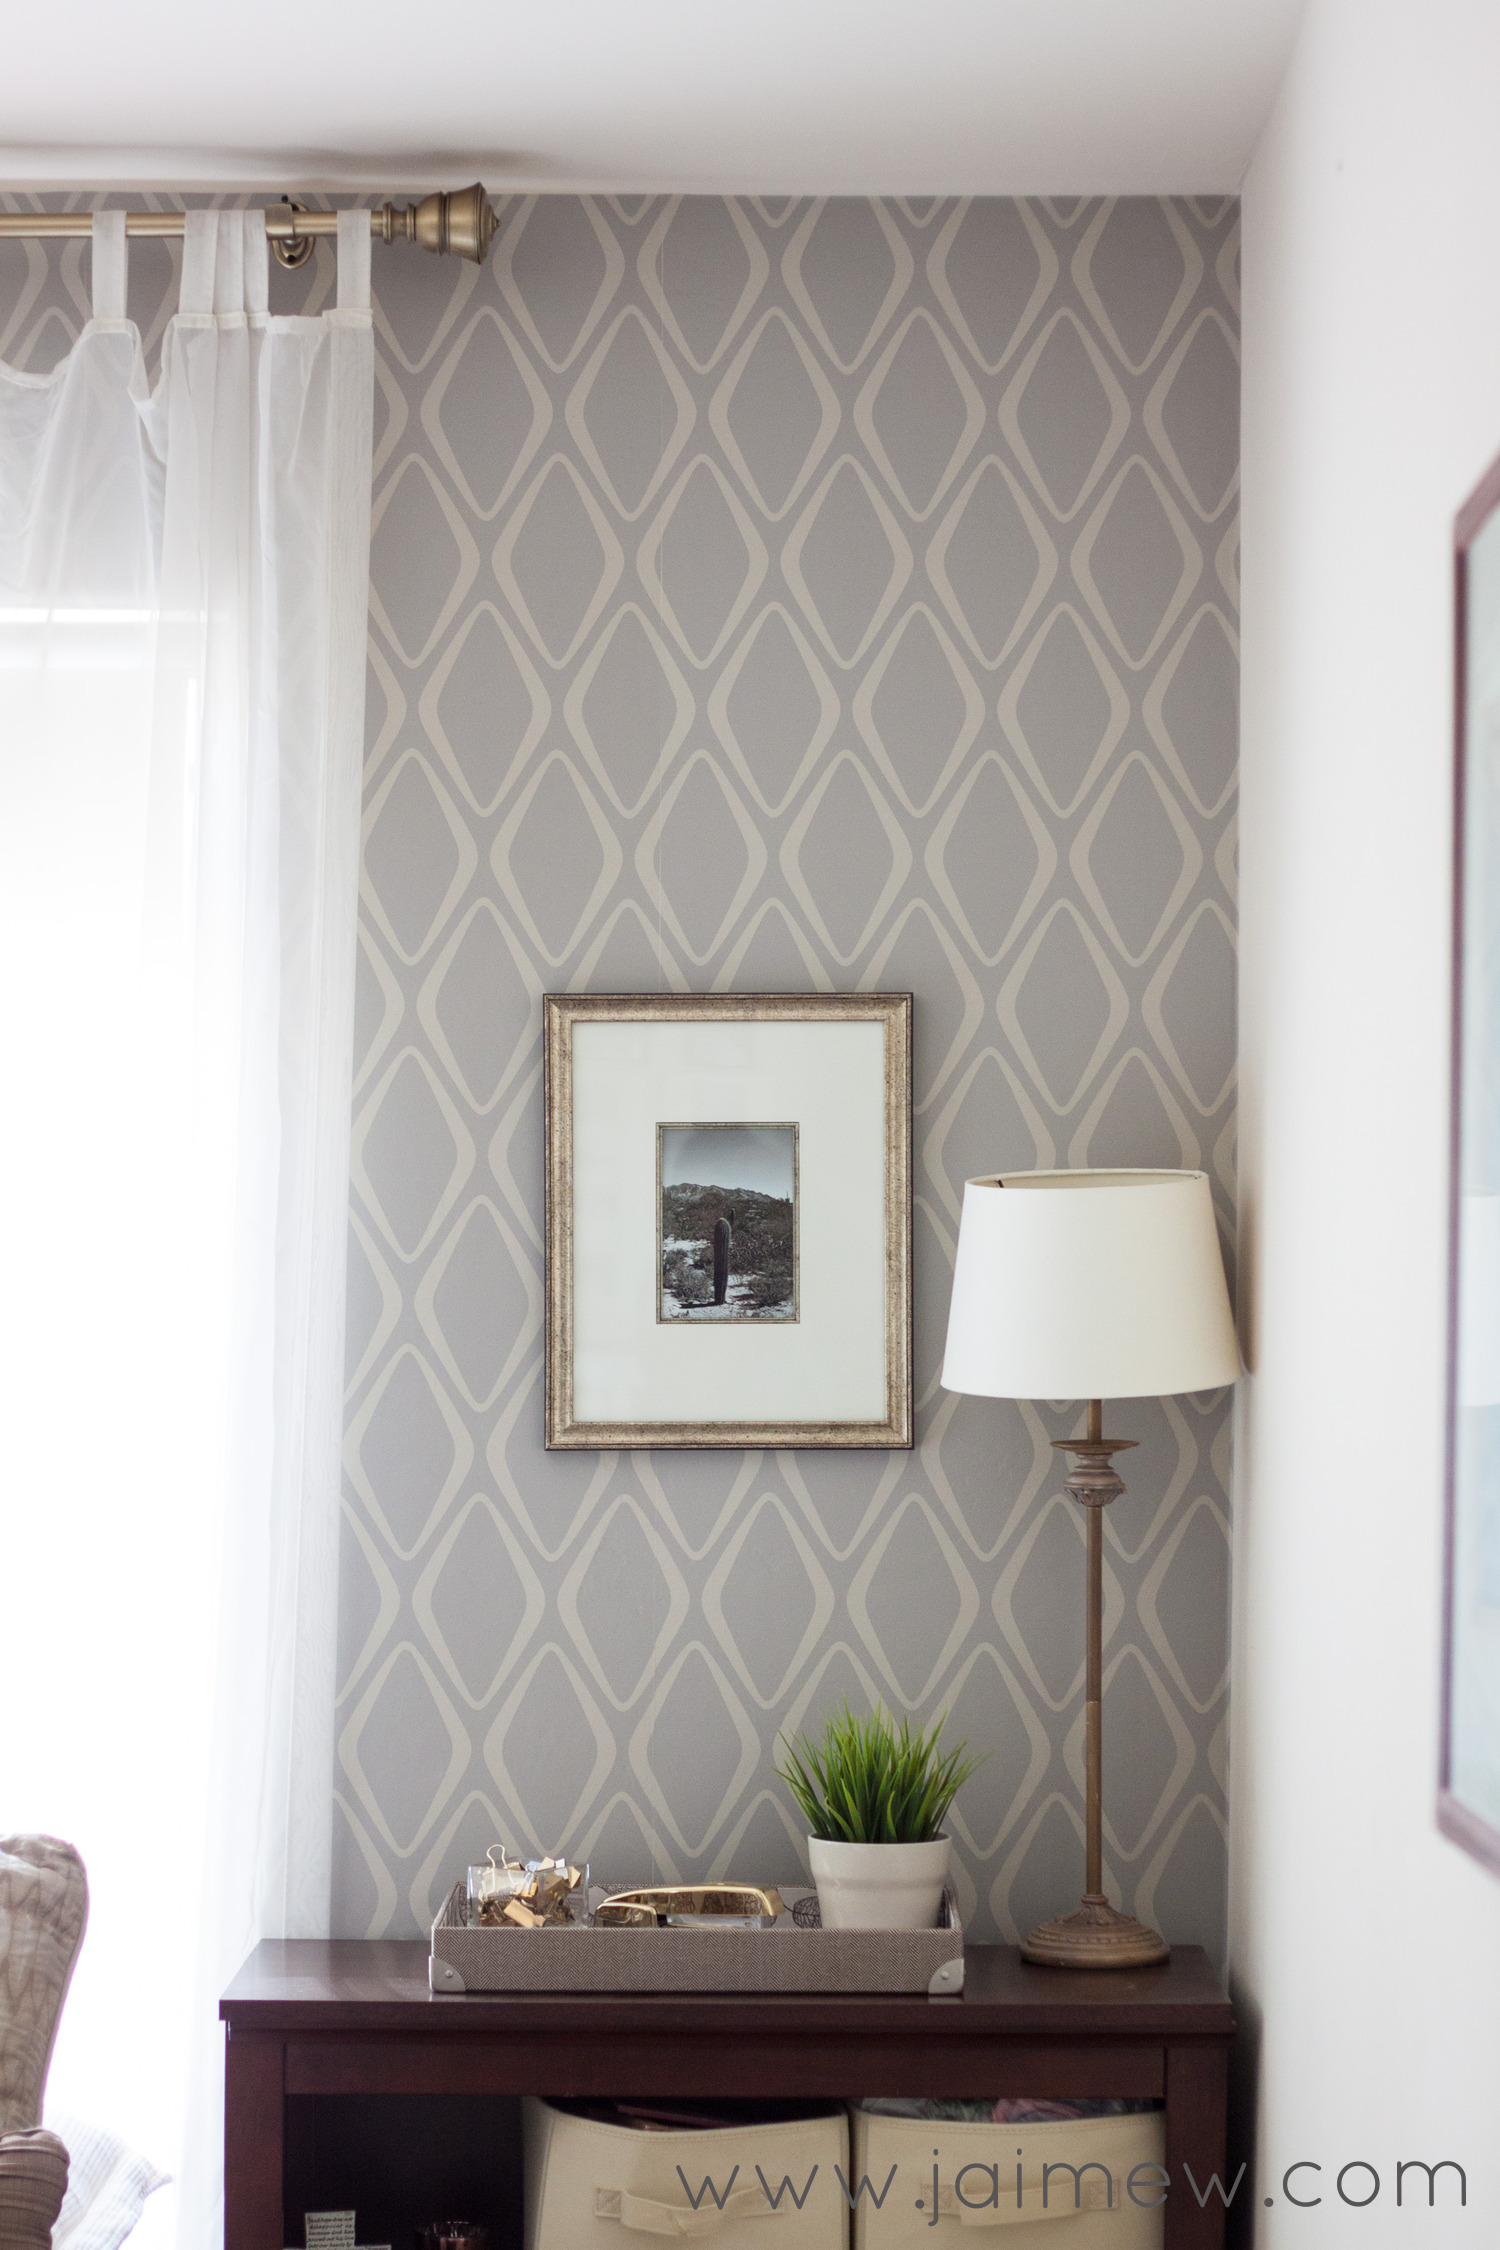 removable wallpaper - Devine Diamond in Twig by Target